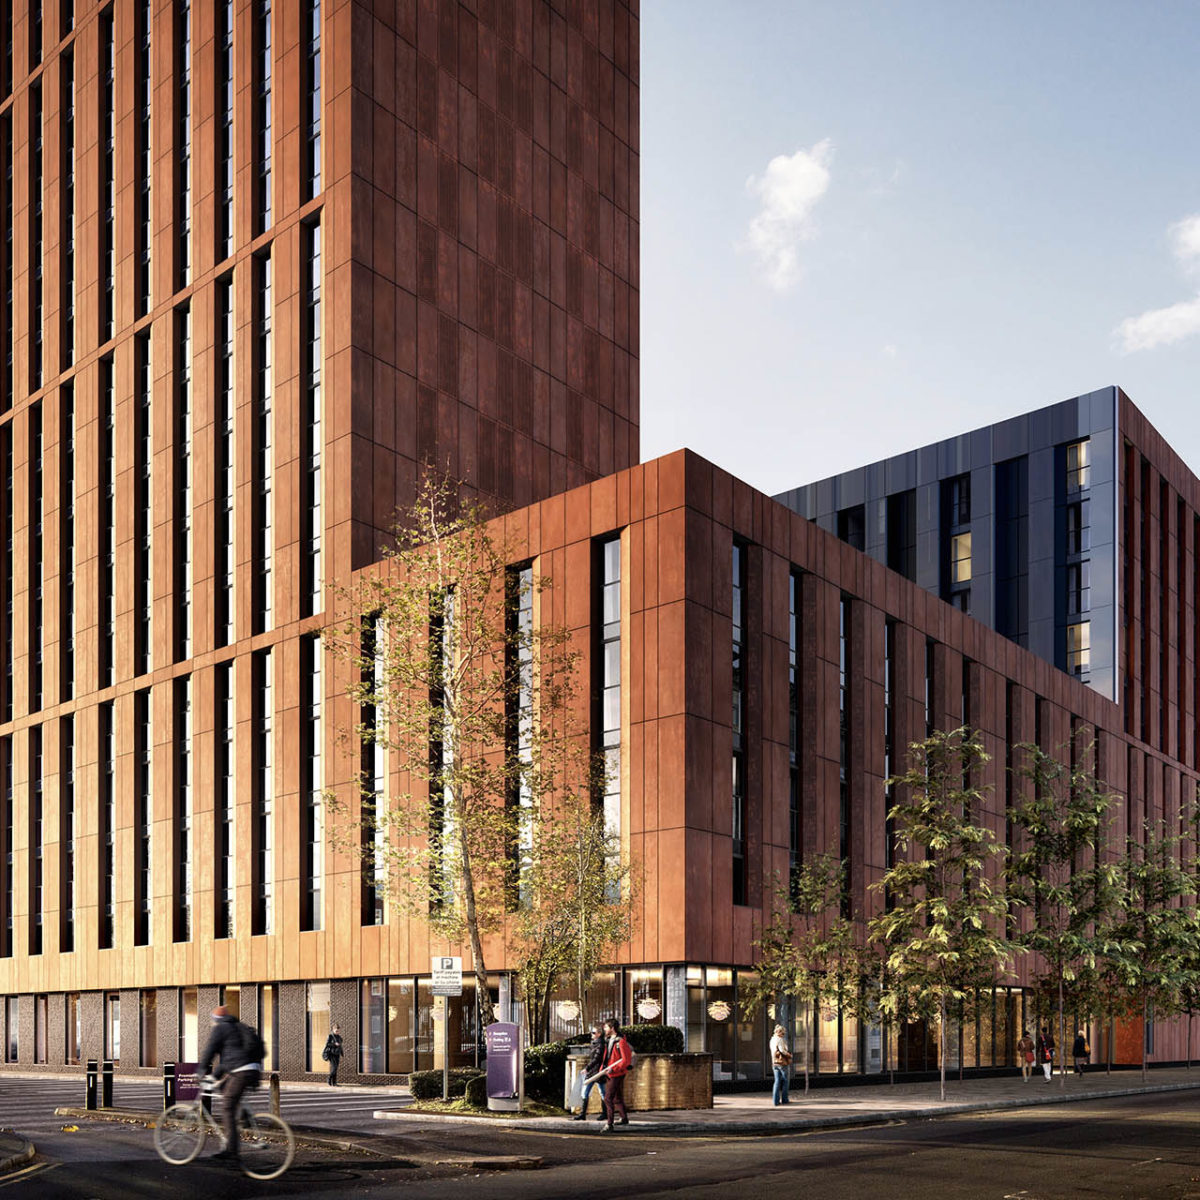 River Street shortlisted for 'Best Tall Building Awards'